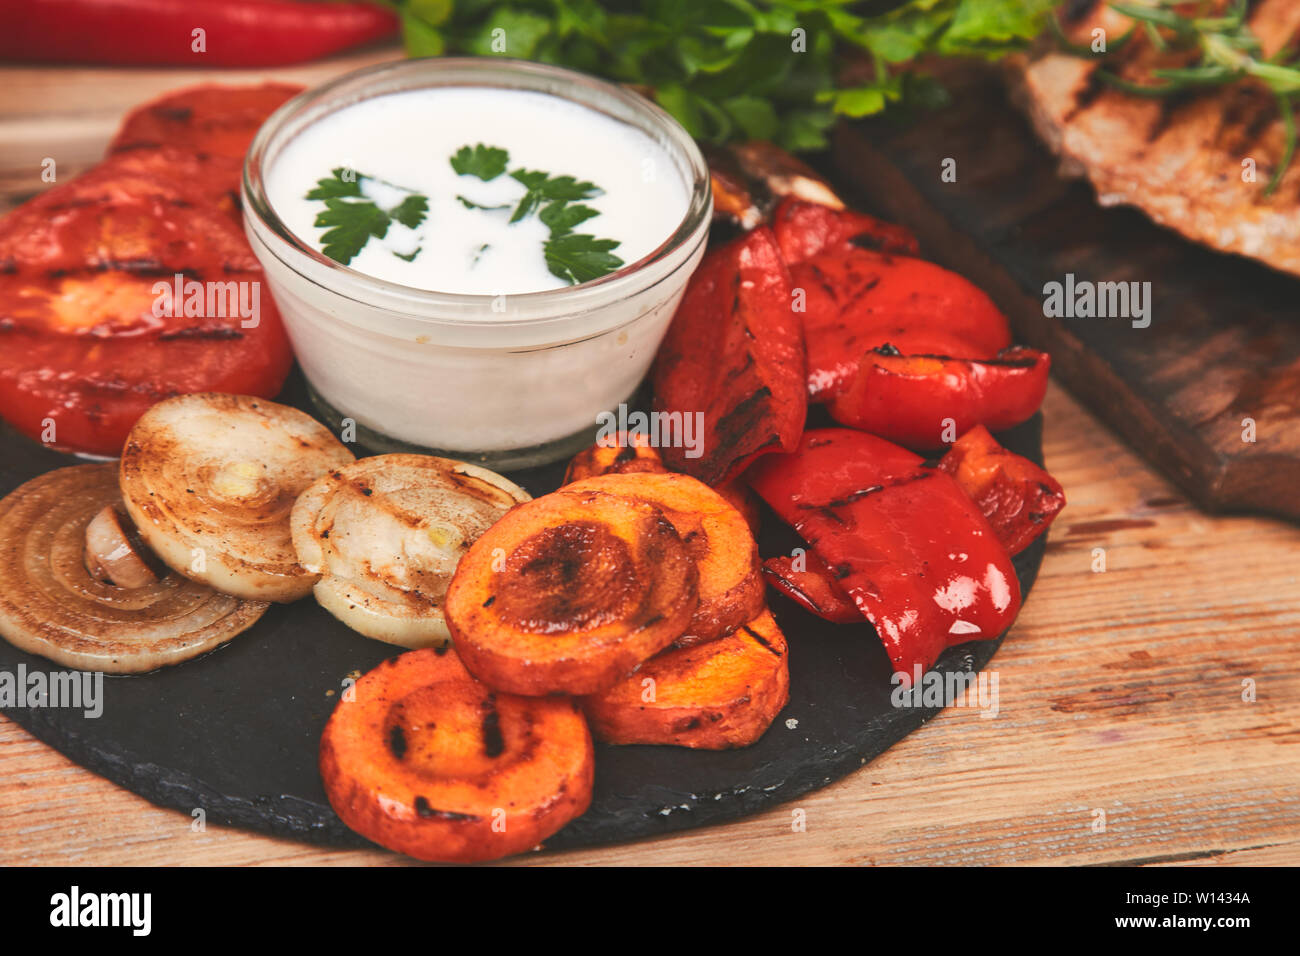 Grilled vegetables on black slate plate on wooden background. view from above. Diet vegan food. Healthy. Top view. Frame. Flat lay. Copy space. - Stock Image